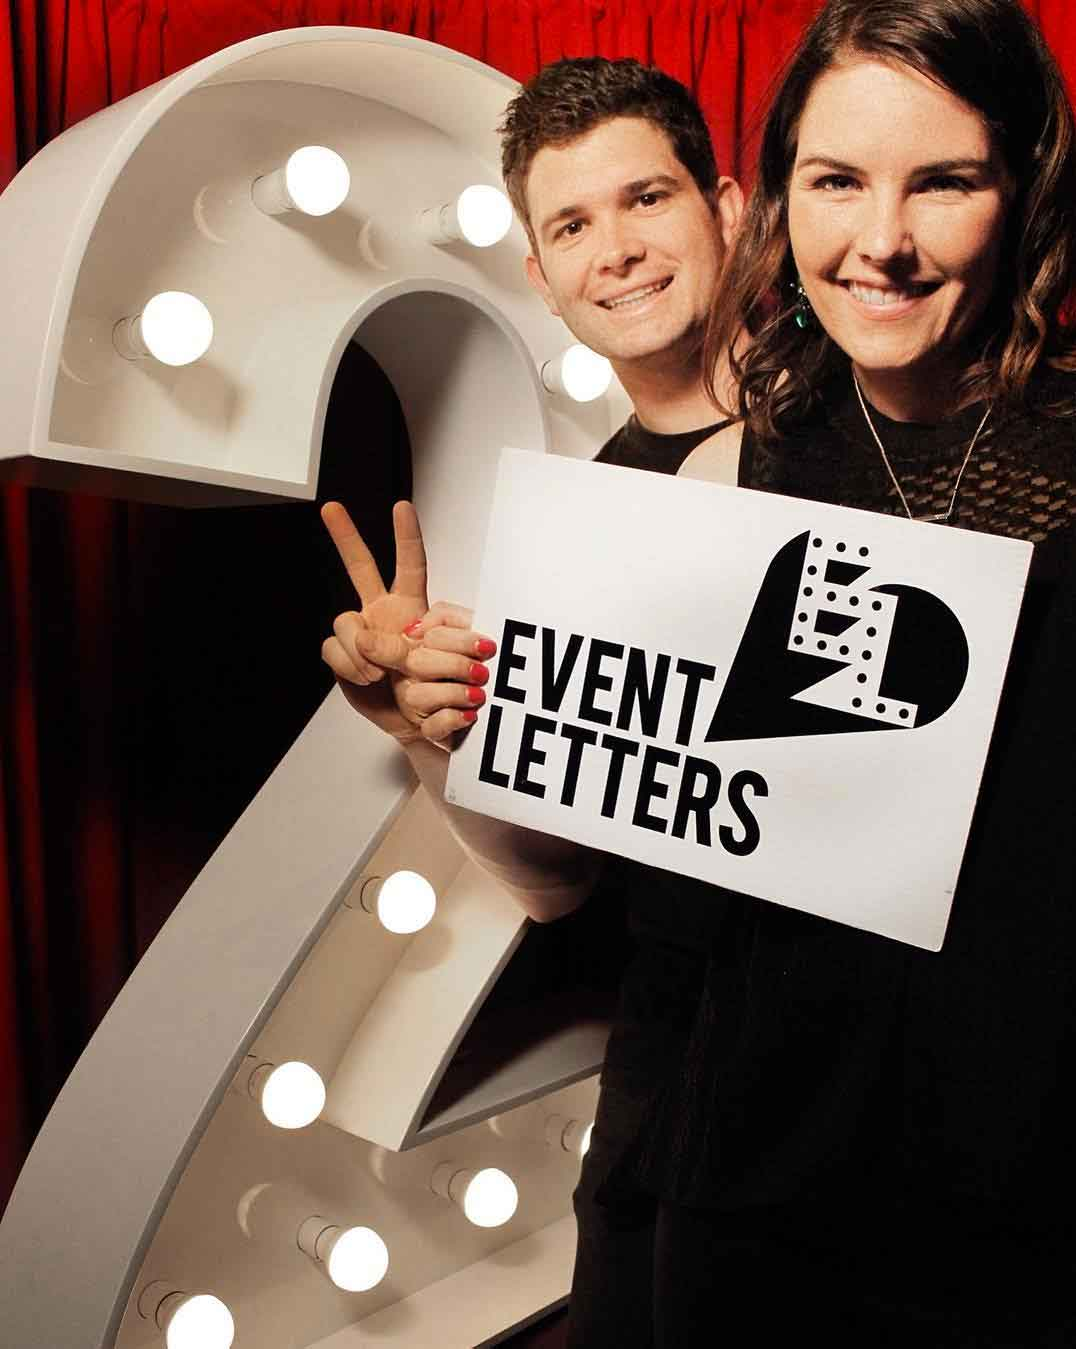 Katie & Dave - Event Letters Owners